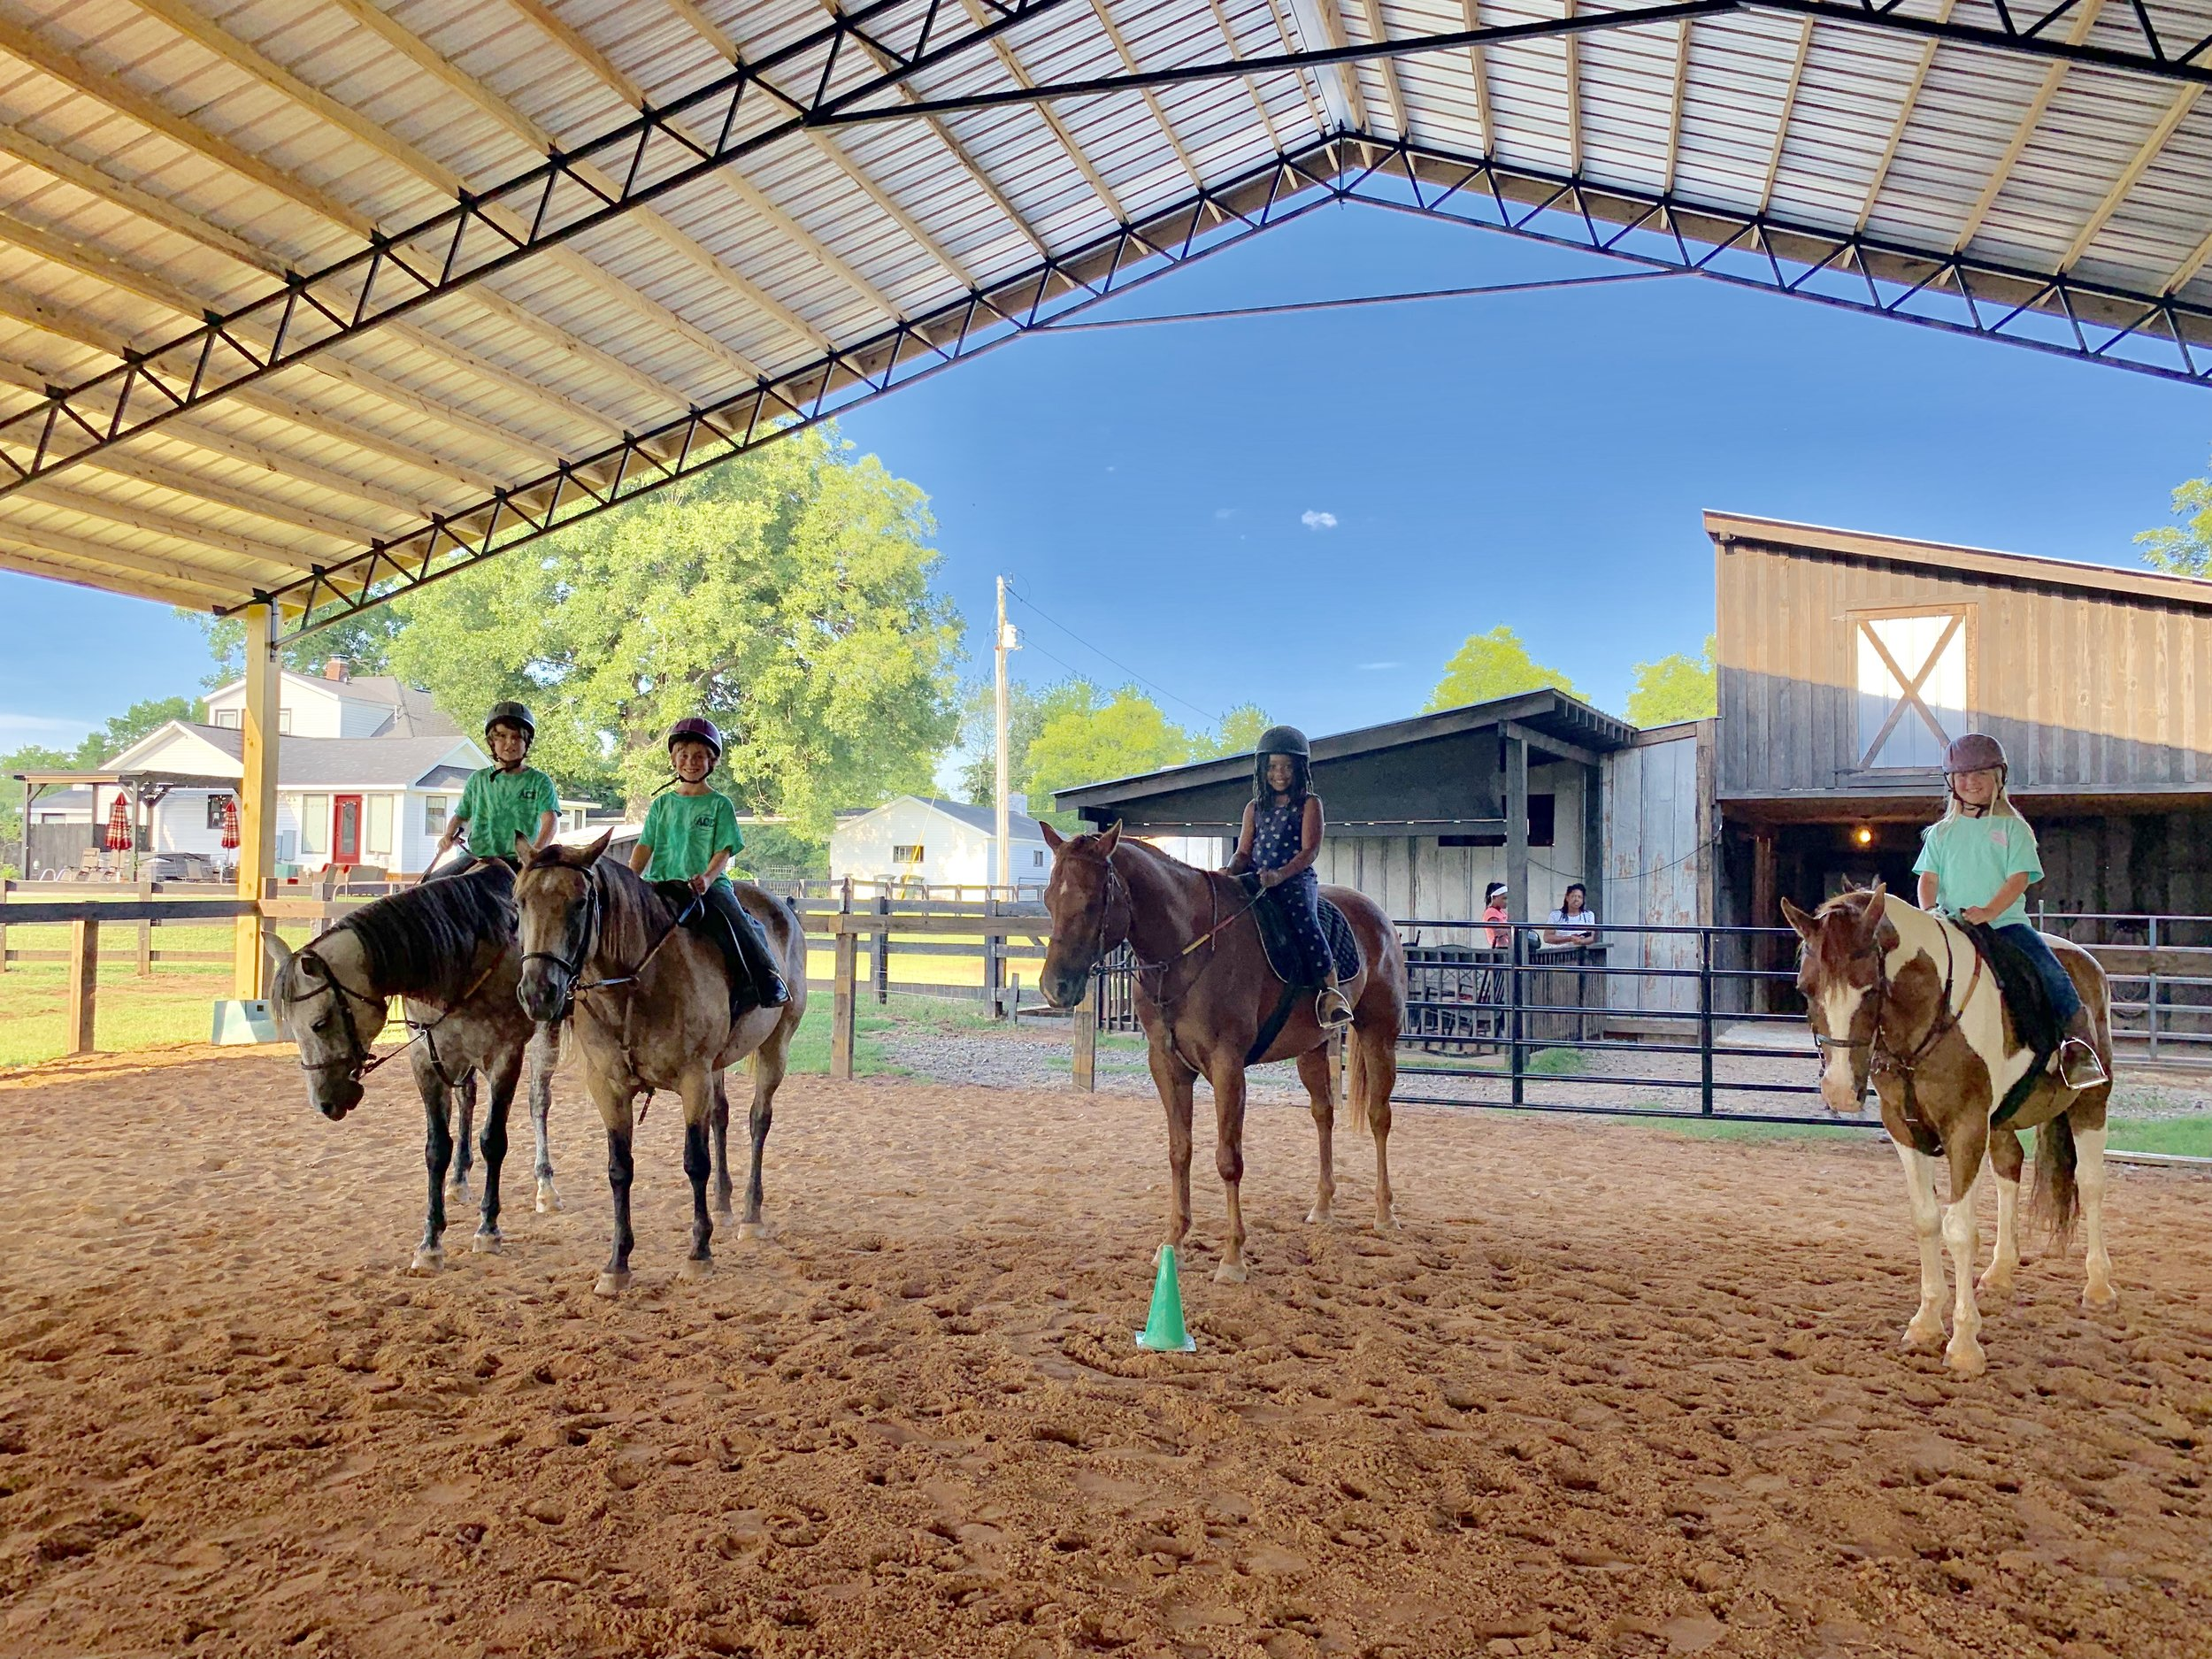 Group Lesson - $40* Per Person60 Minutes - 3 or More RidersEnglish, Western, Jumping, Bareback, ObstacleAges 5 plus, Intermediate-Advanced, Up to 200 lbs*Price Reflects $5 Monthly Package Rate